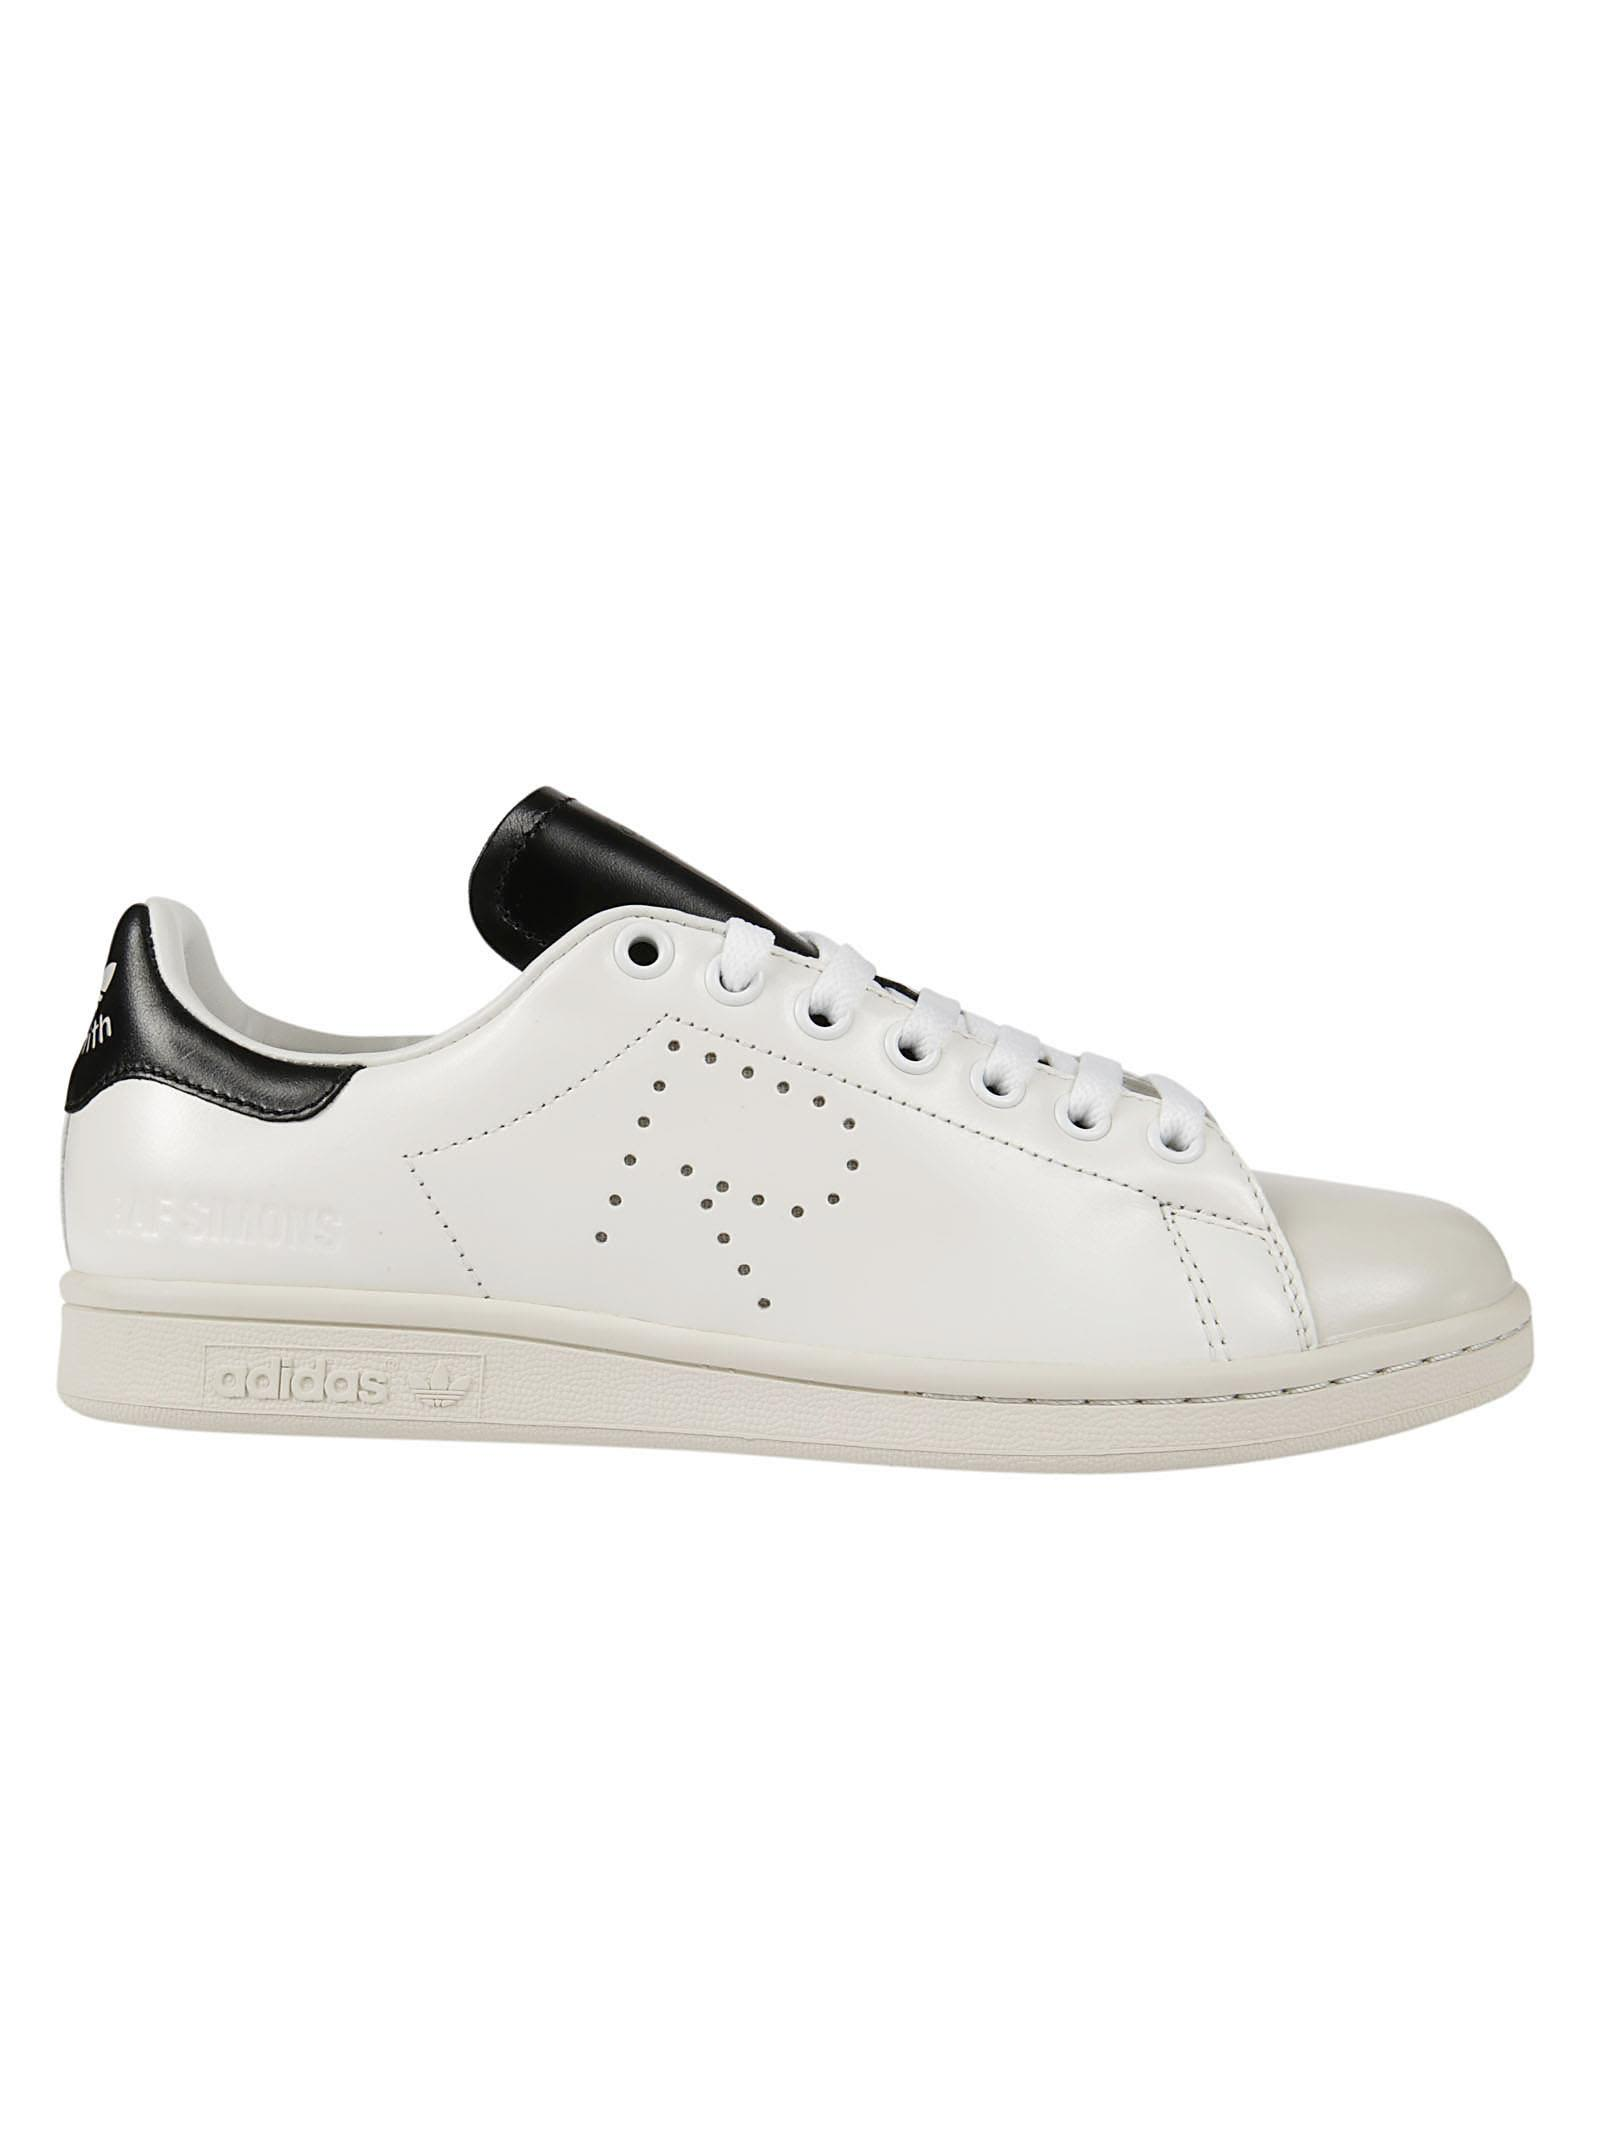 raf simons adidas by raf simons stan smith sneakers. Black Bedroom Furniture Sets. Home Design Ideas